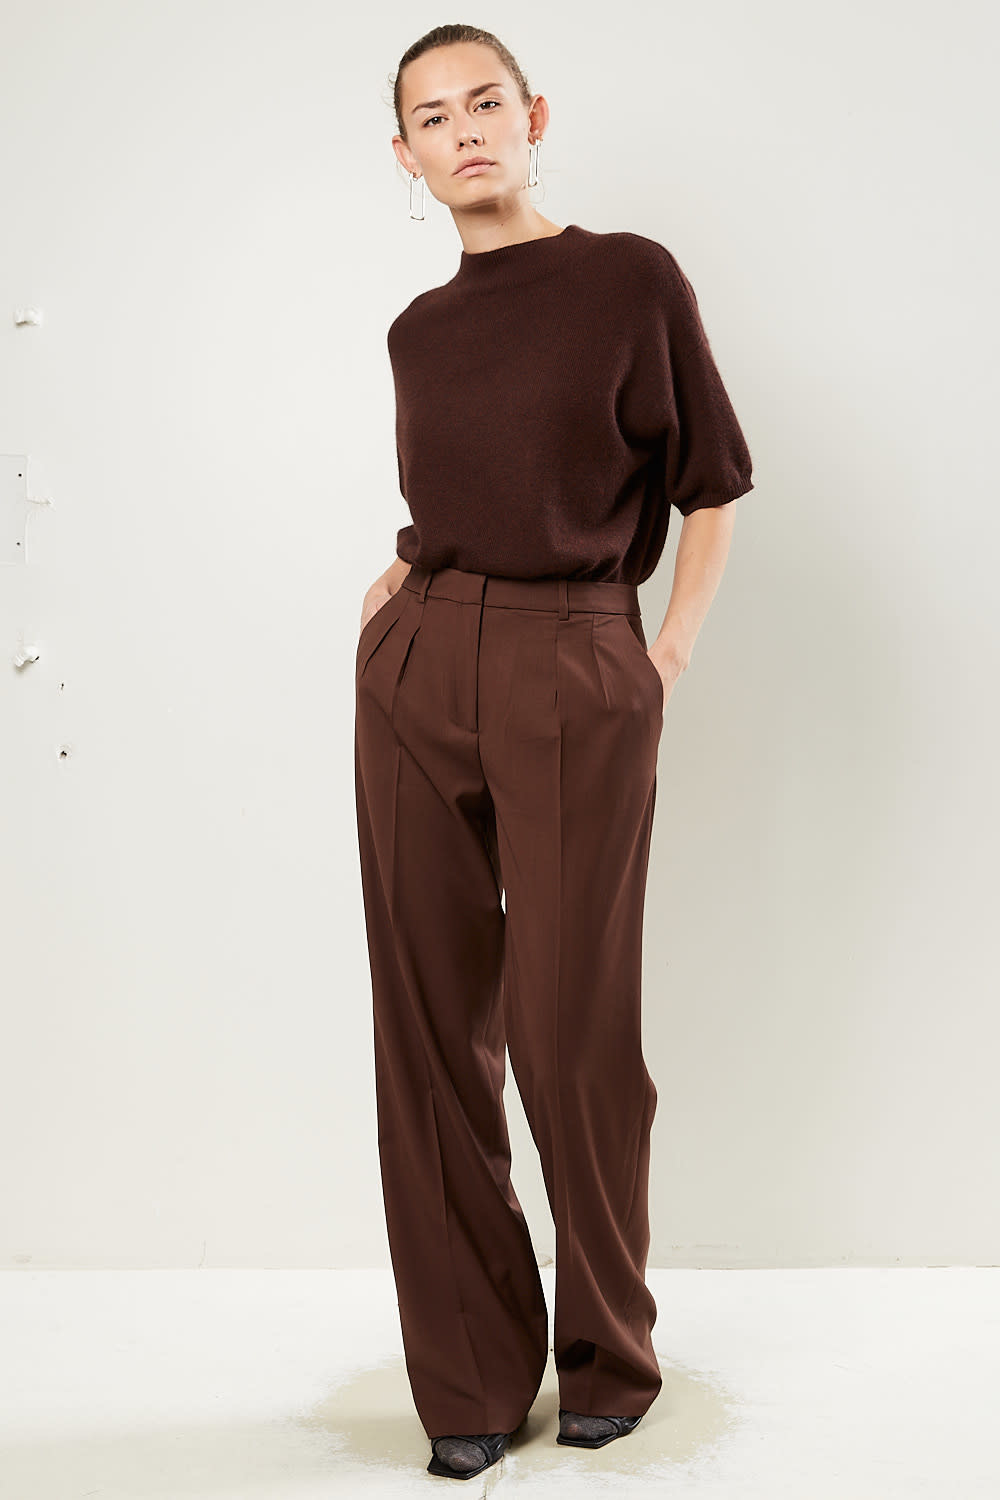 loulou studio Sbiru 100% super wool pants